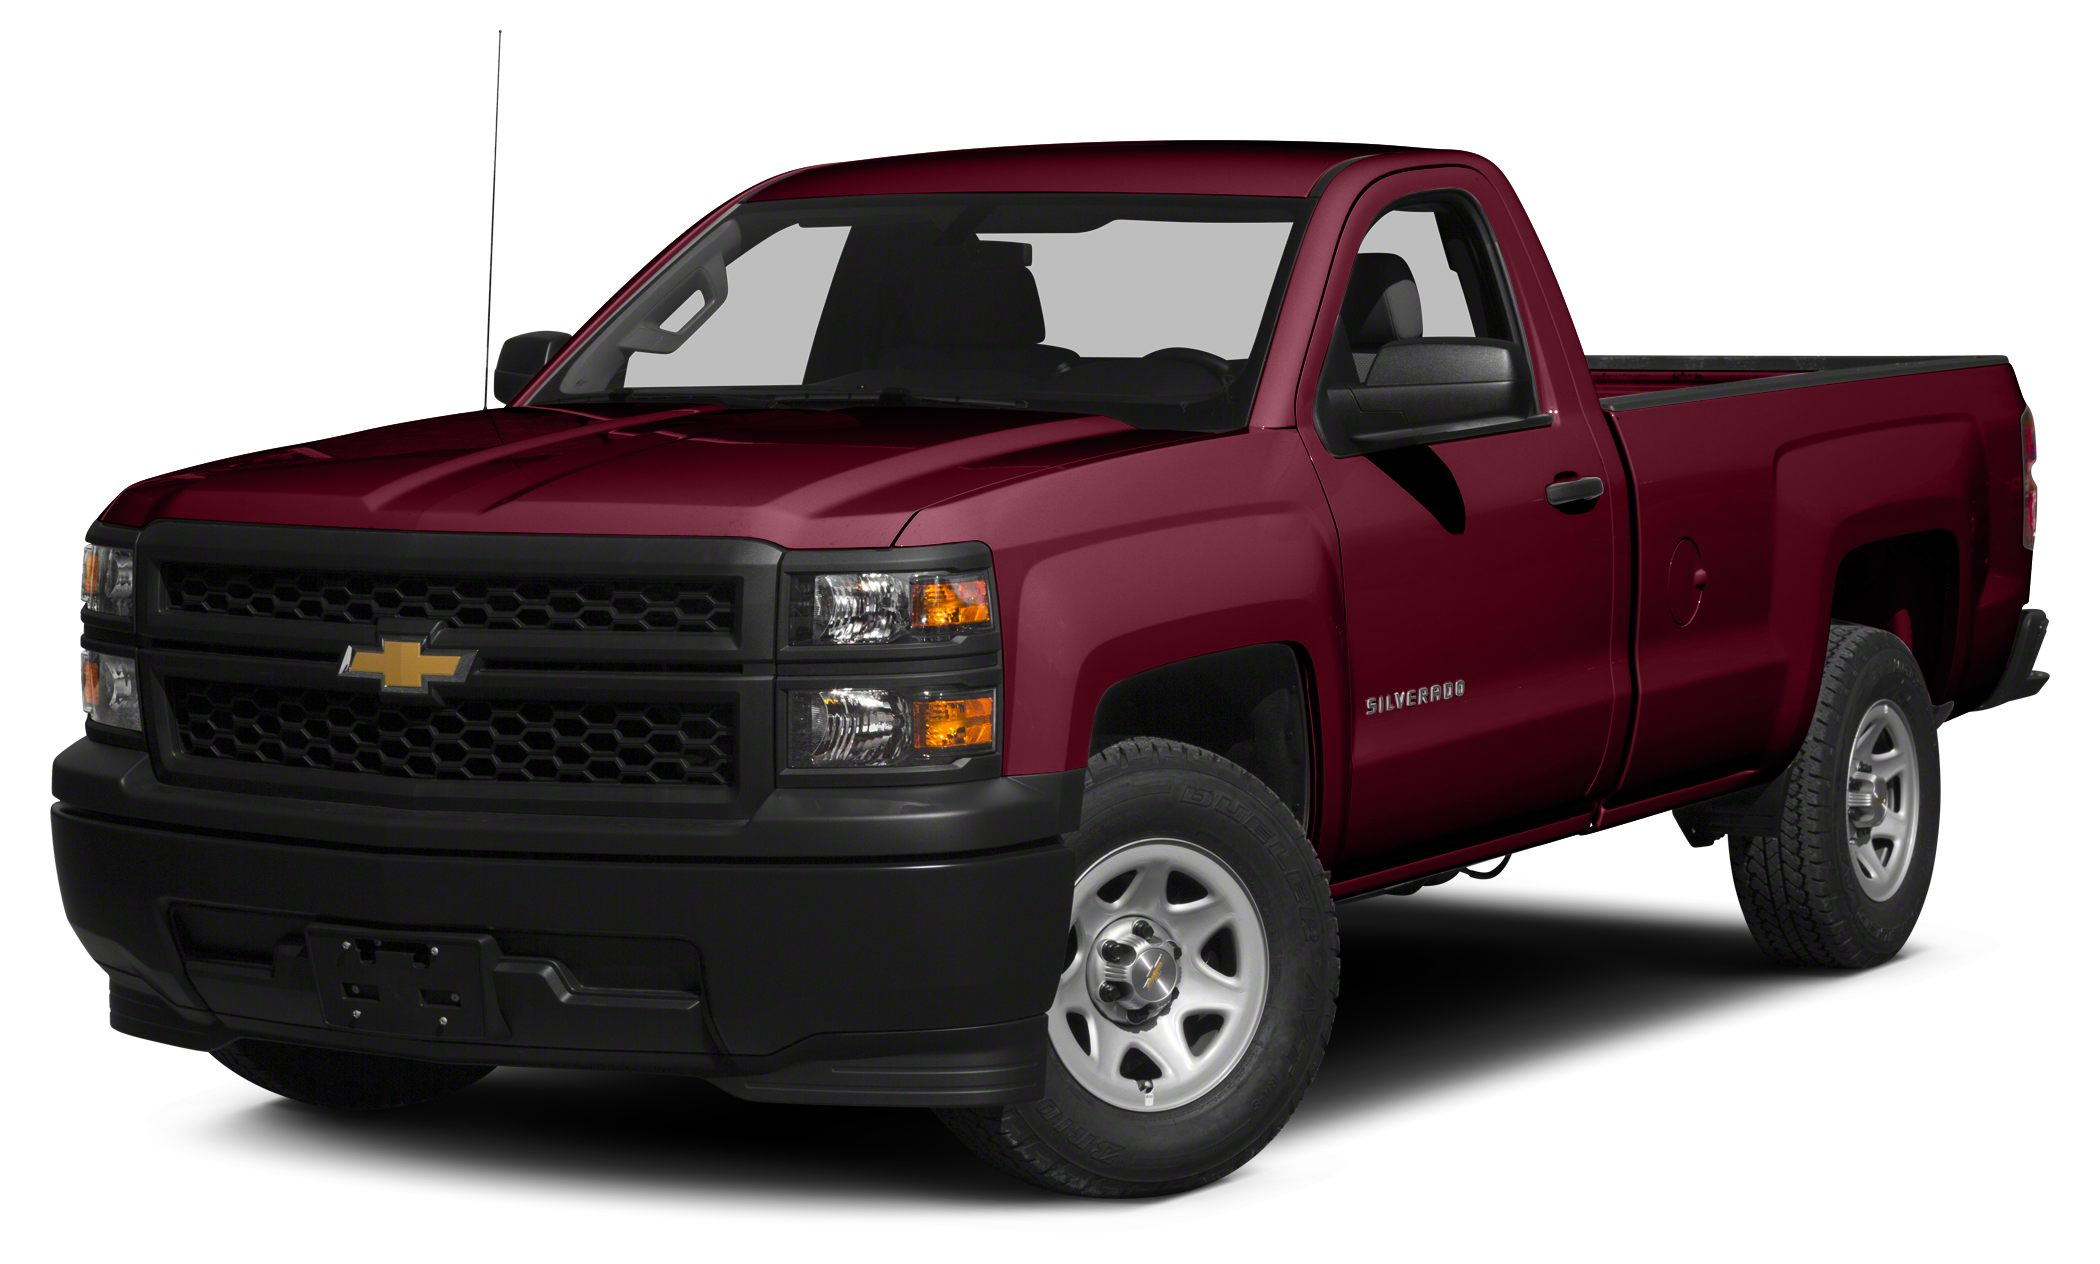 2015 Chevrolet Silverado 1500 WT CARFAX 1-Owner ONLY 25942 Miles EPA 24 MPG Hwy18 MPG City Wo